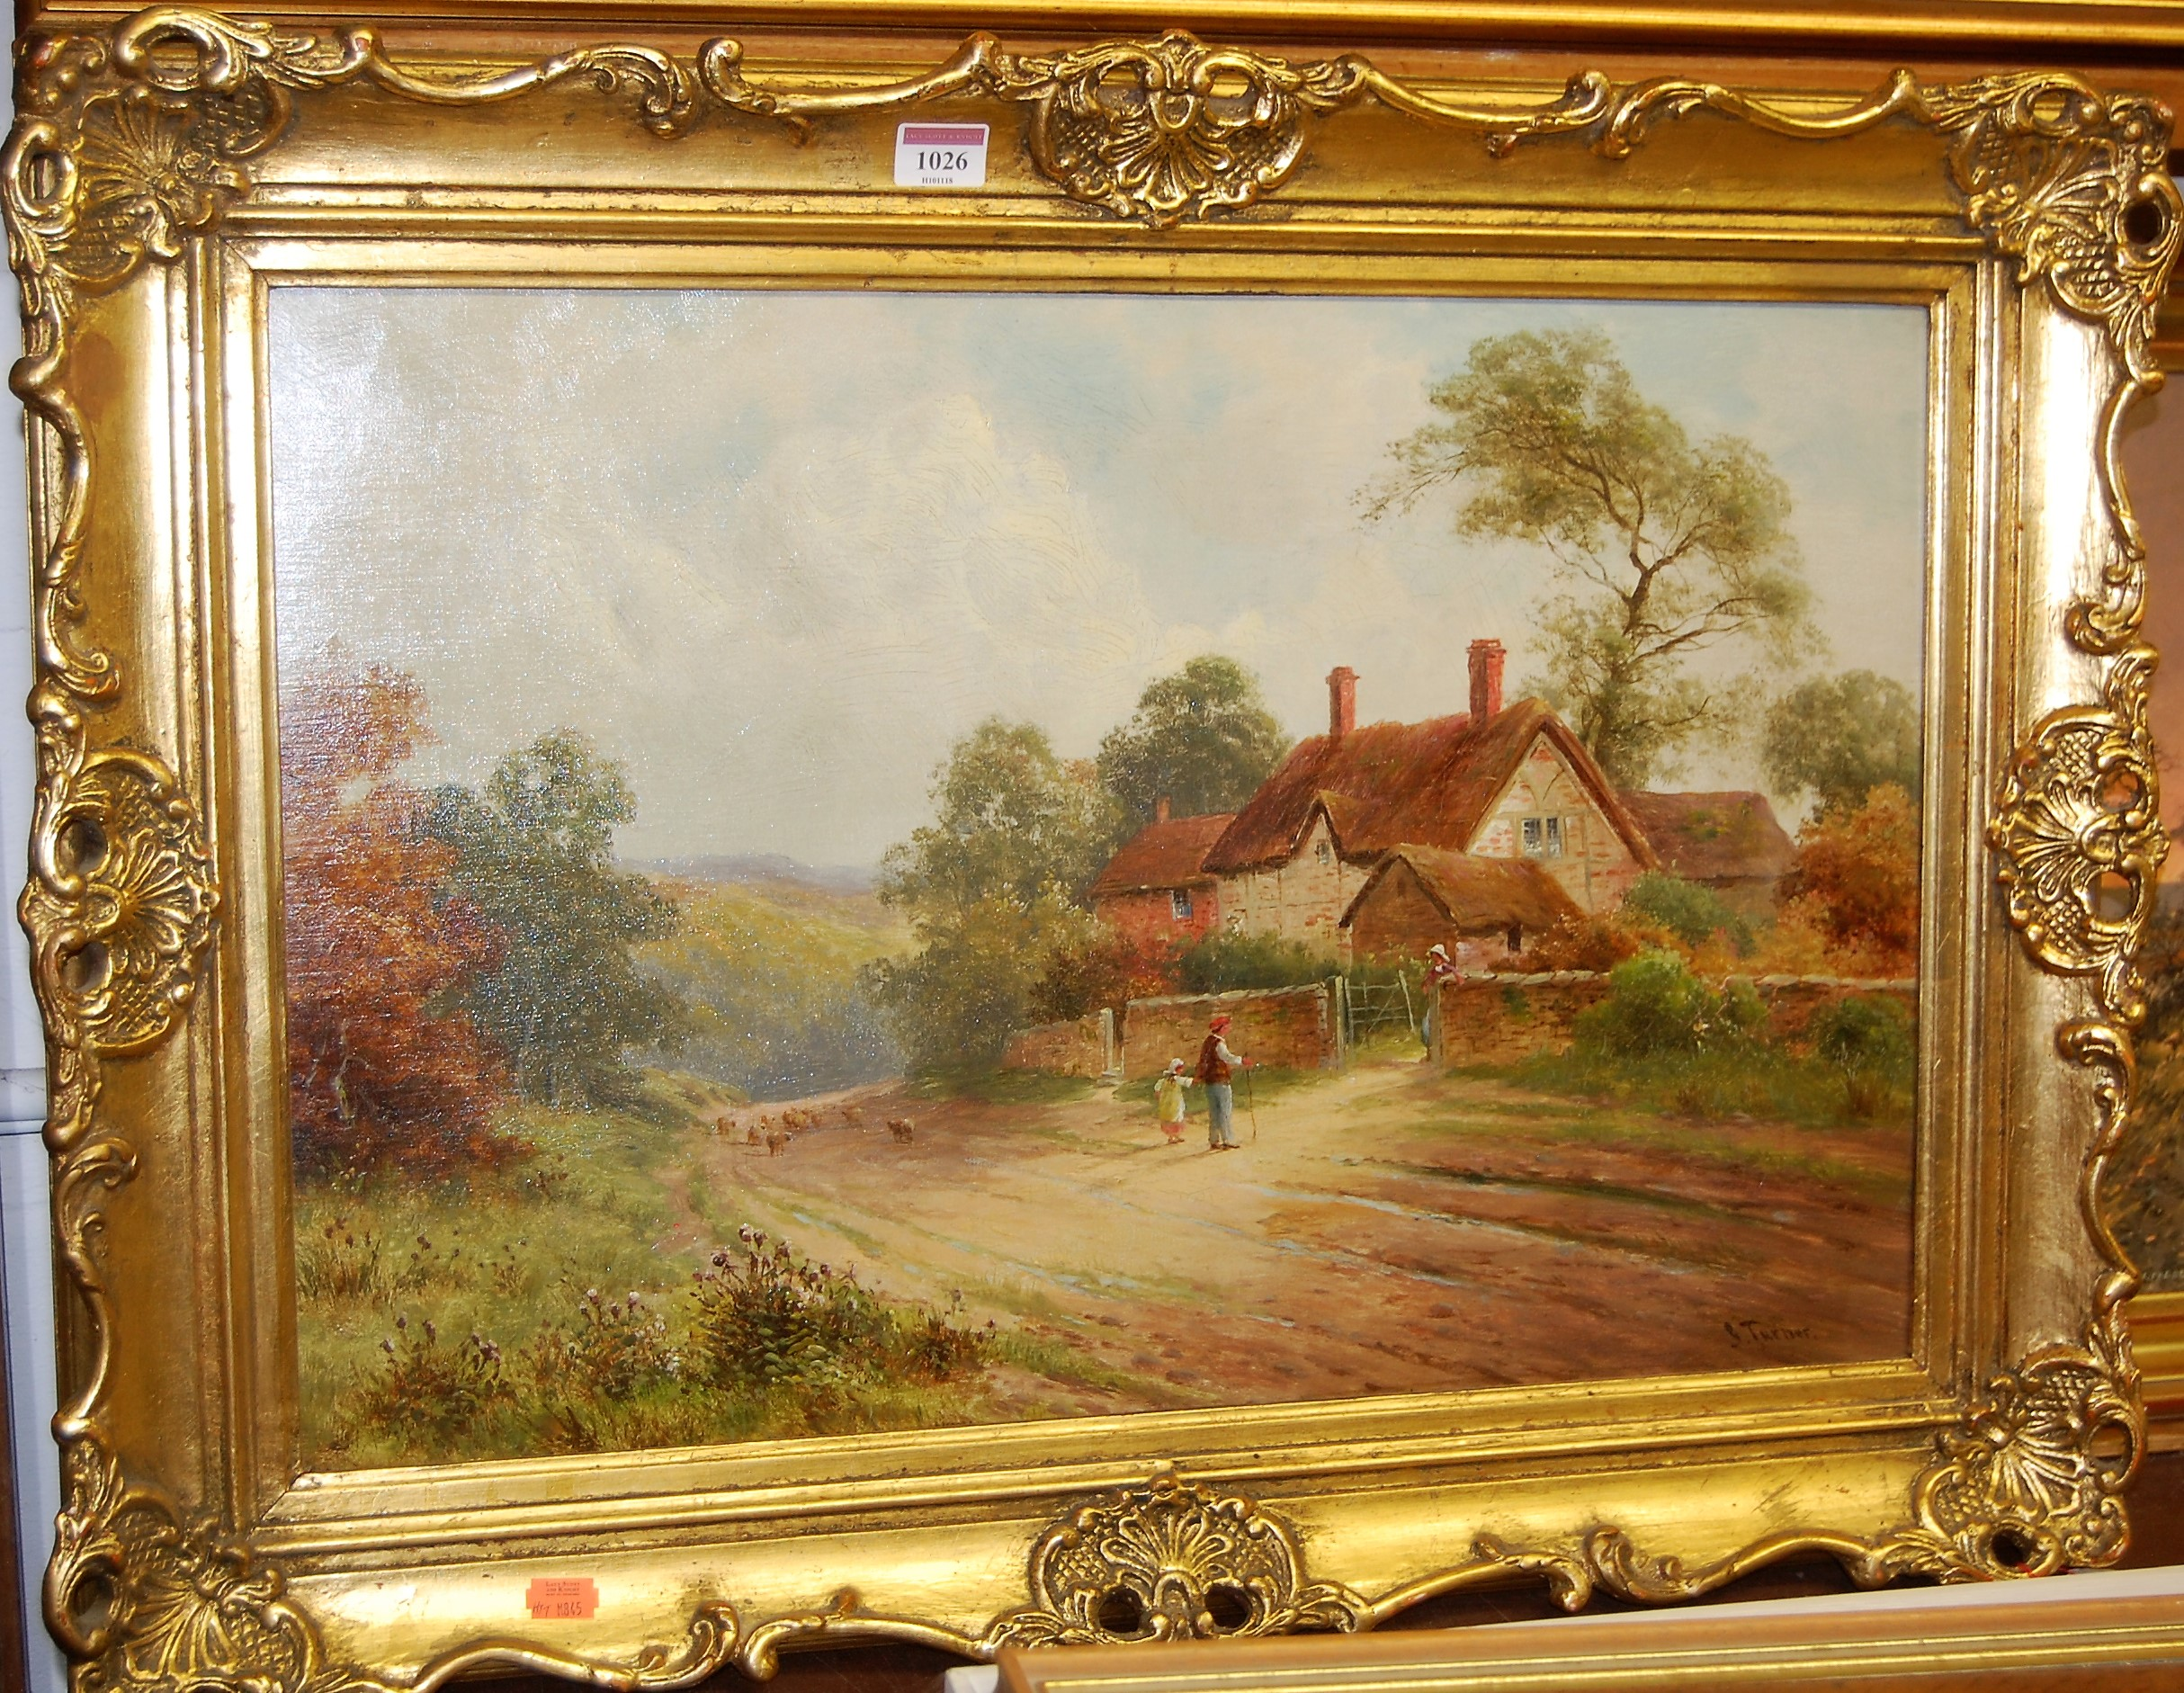 Lot 1026 - G Turner - Rural scene with figures driving sheep before thatched cottages, oil on canvas (re-